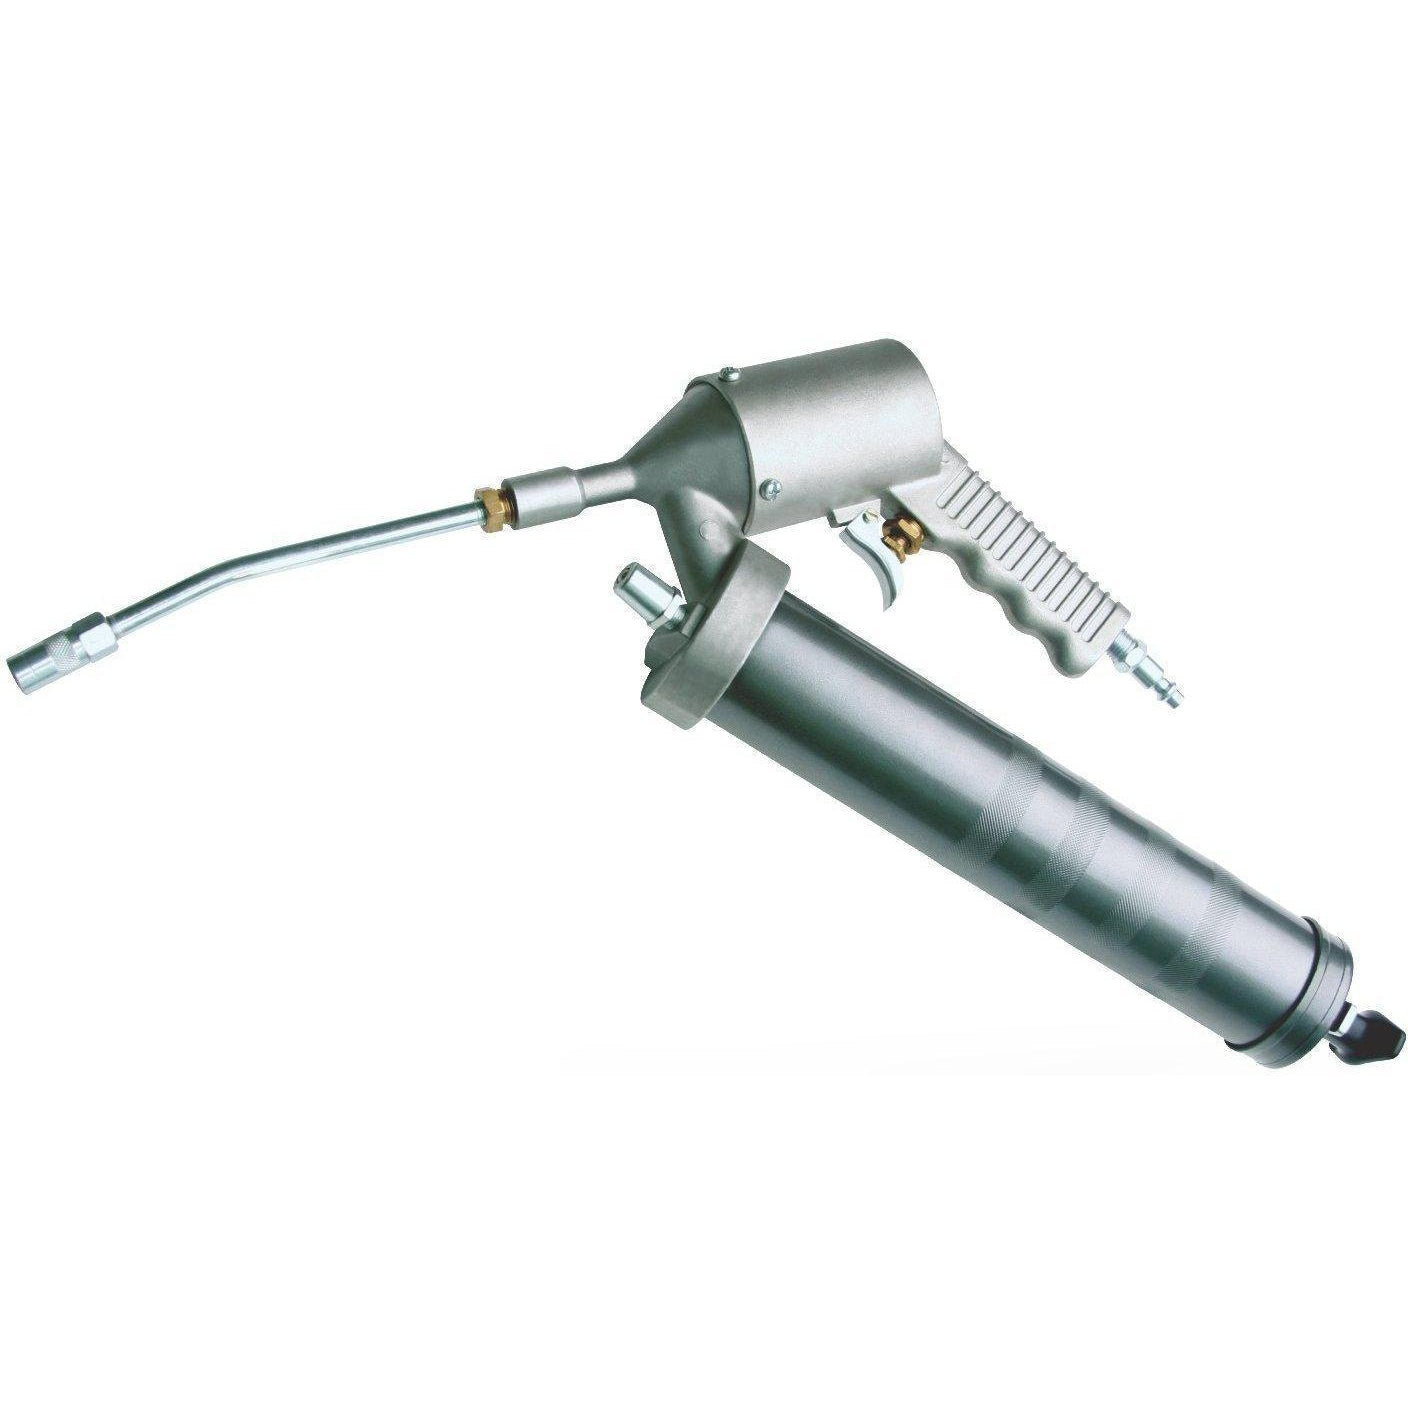 Graco 112196 Pneumatic Pistol Type Grease Gun - Includes:Rigid Extension And Hydraulic Coupler - Fireball Equipment Ltd.